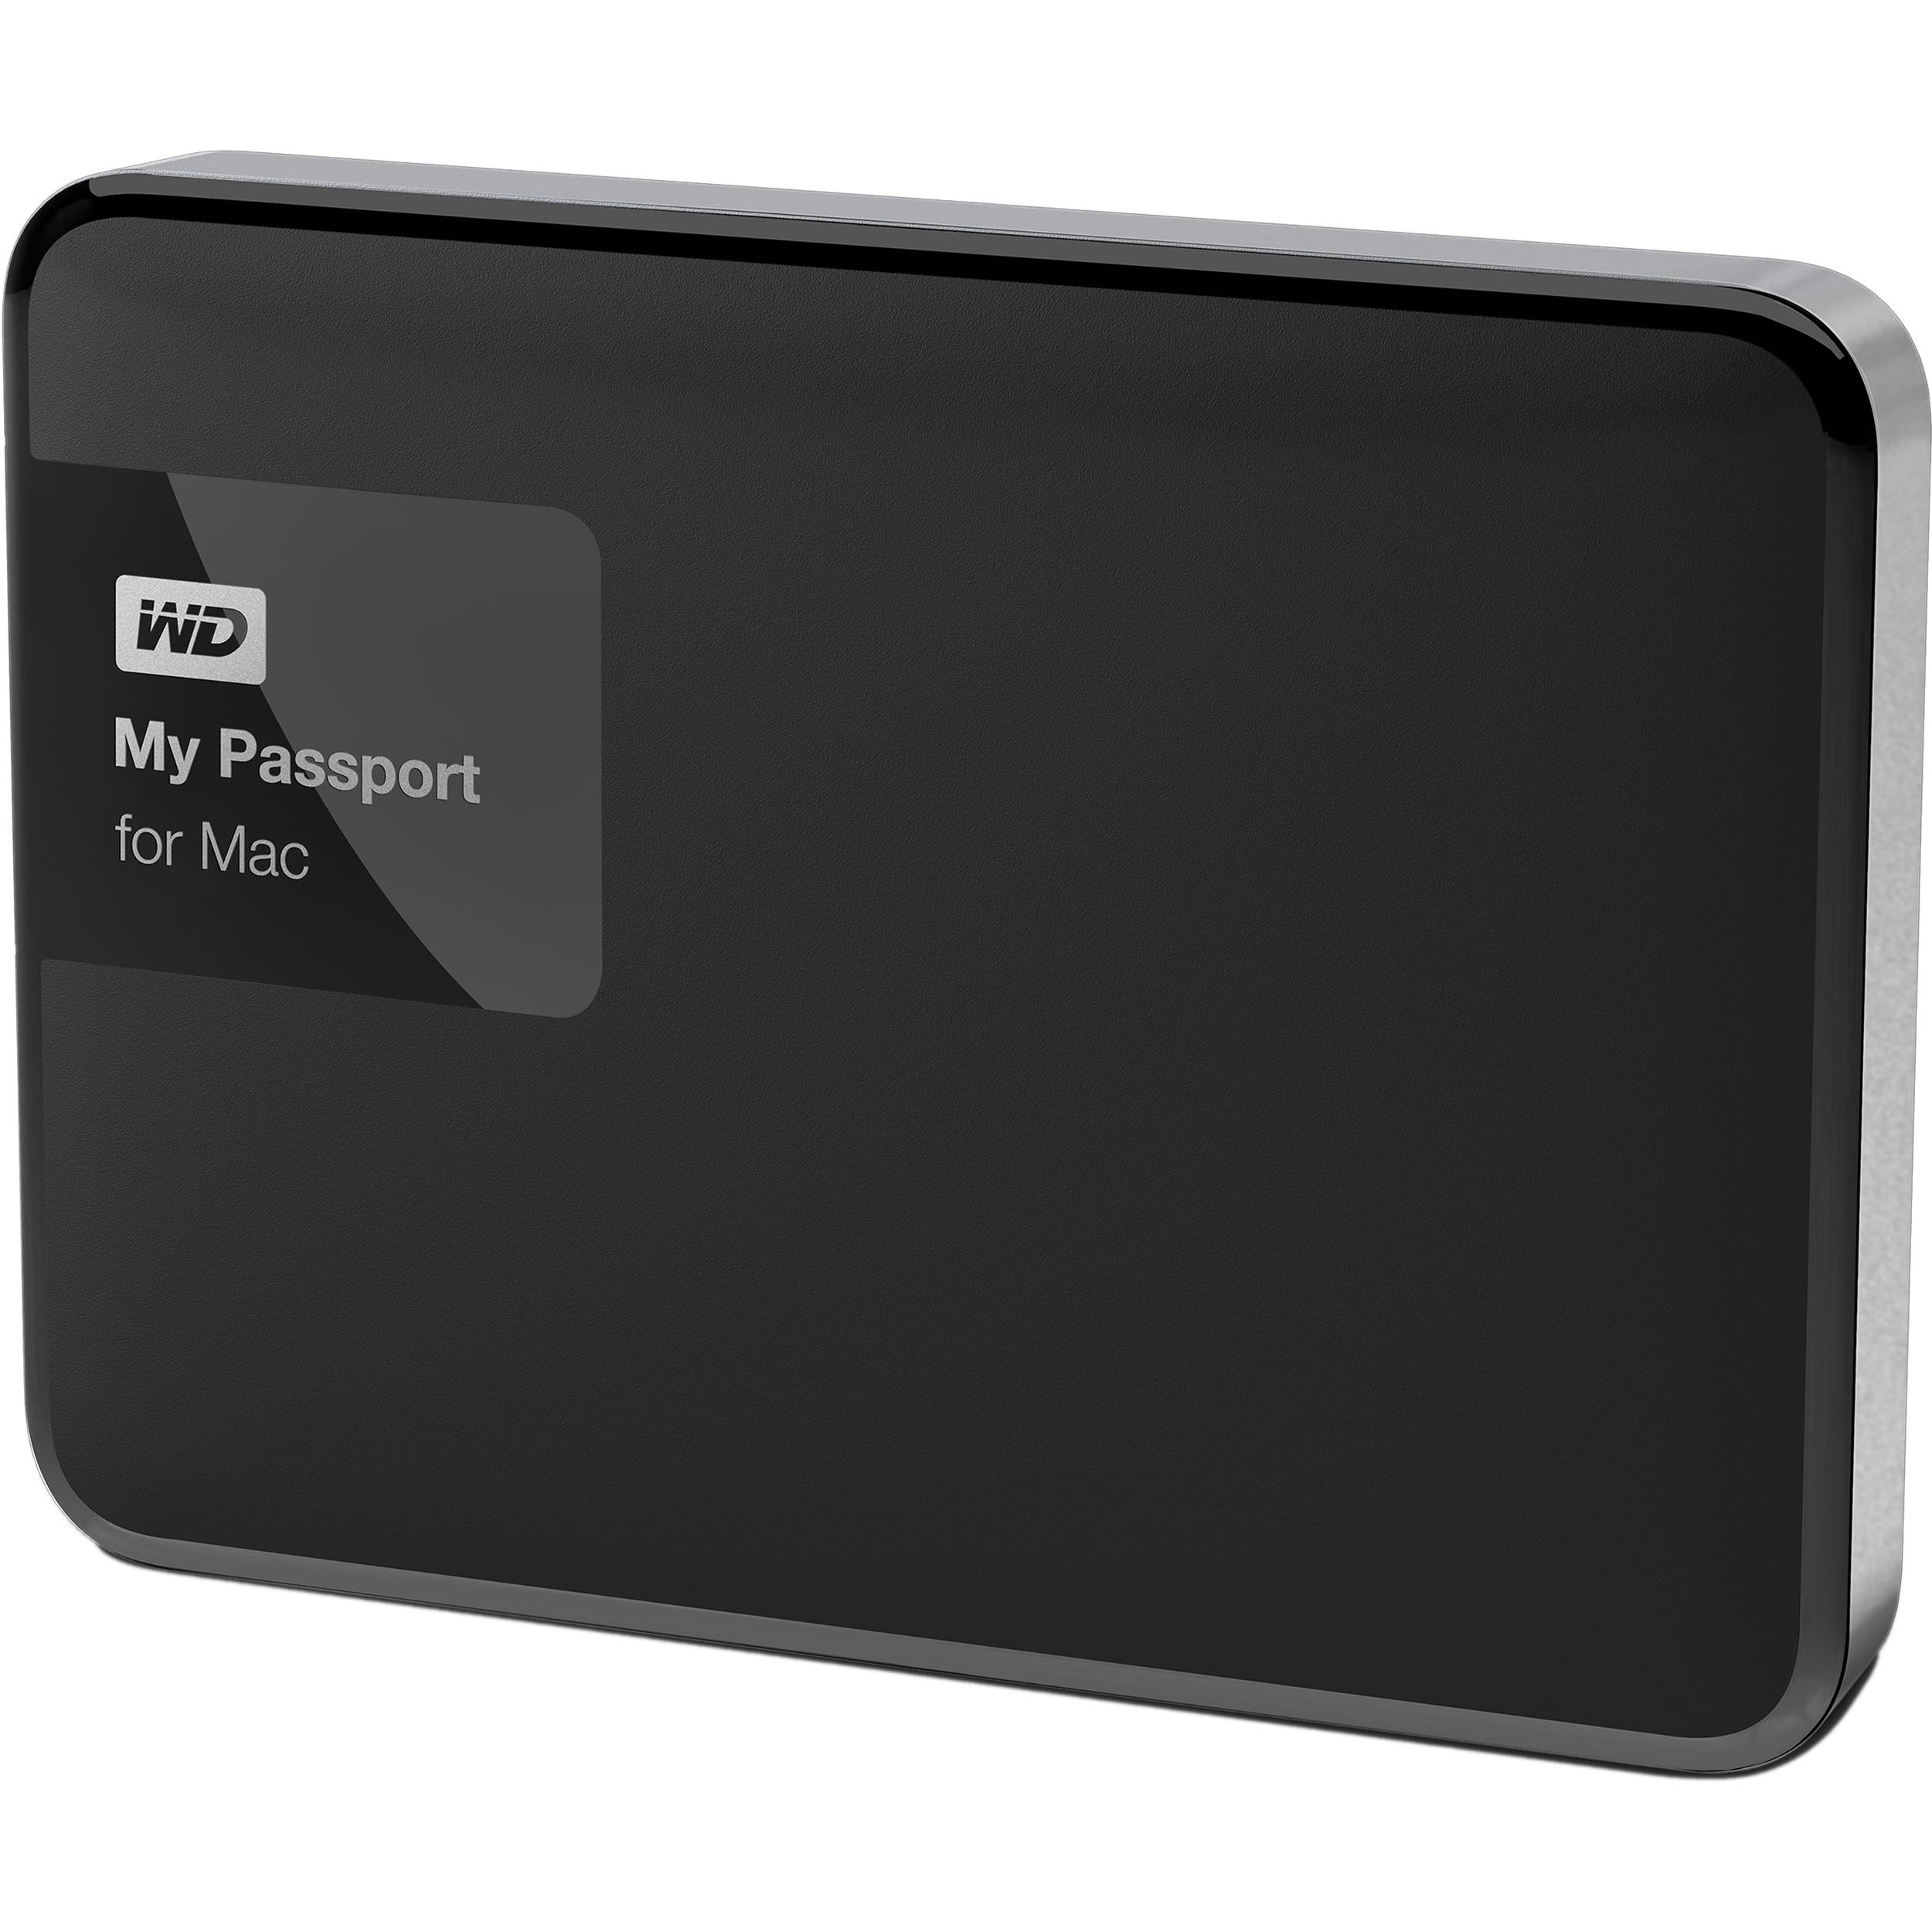 Driver For Wd Passport Mac